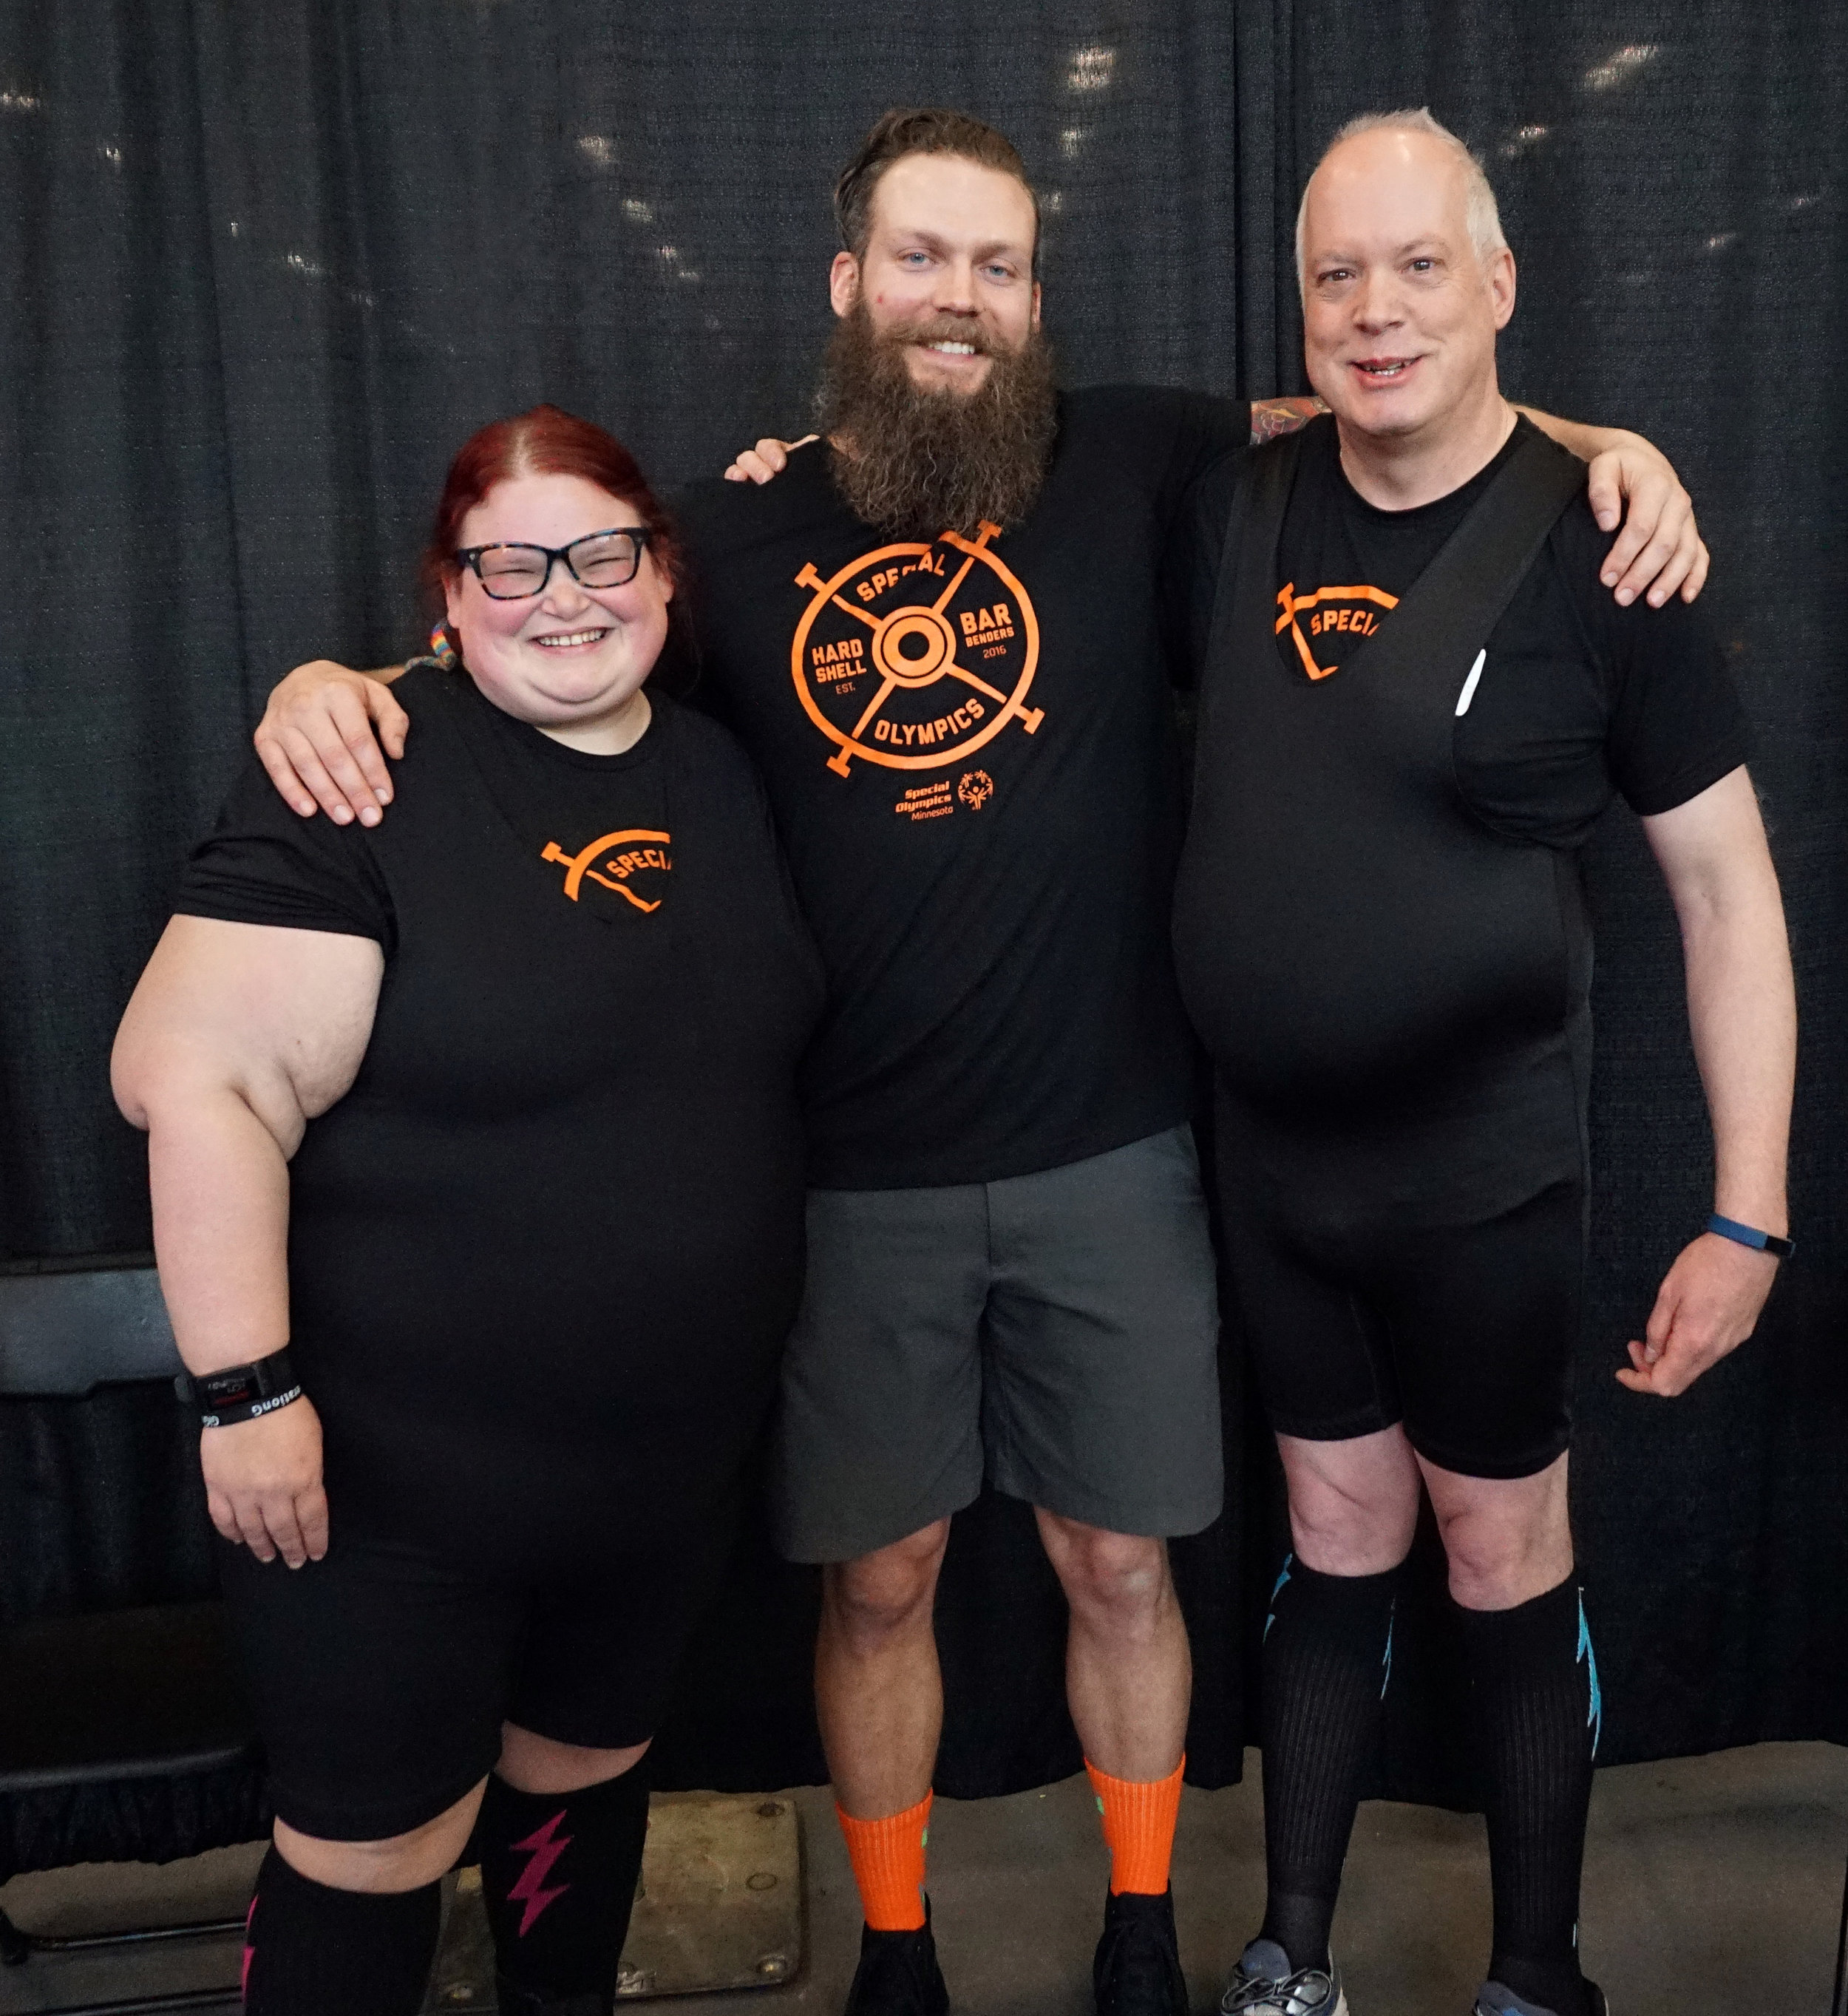 Photo: Three people, two men and one woman. Logo on their shirts reads Special Olympics HardShell Barbenders. From left to right: Nell, Ben and Dave at a Special Olympics Minnesota State Powerlifting meet.